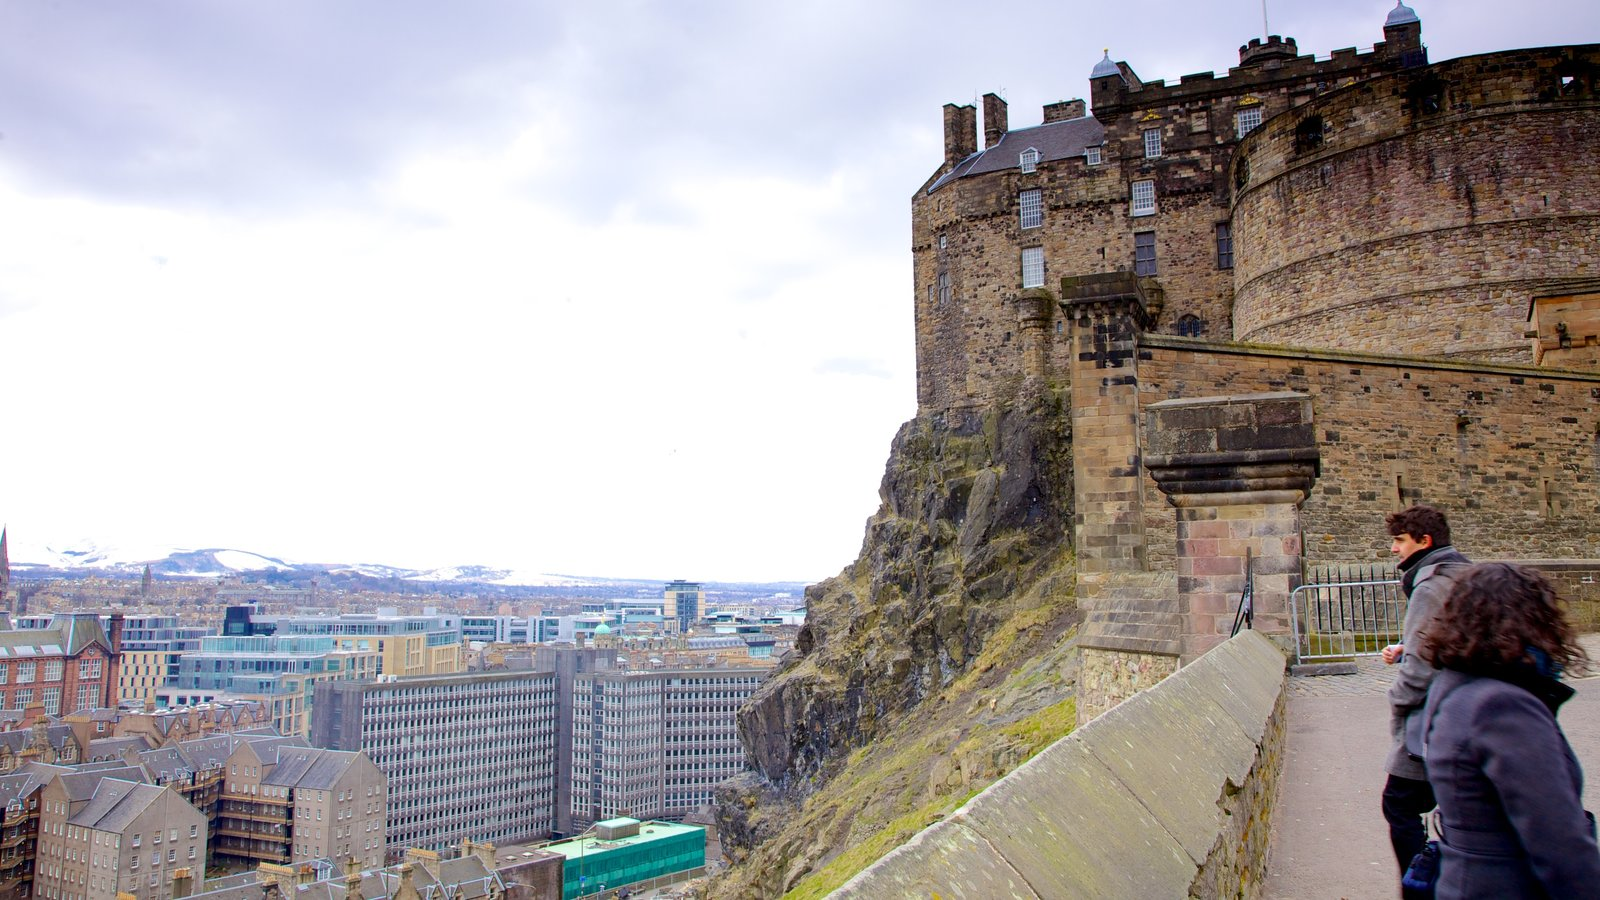 Edinburgh Castle which includes a city, heritage architecture and views